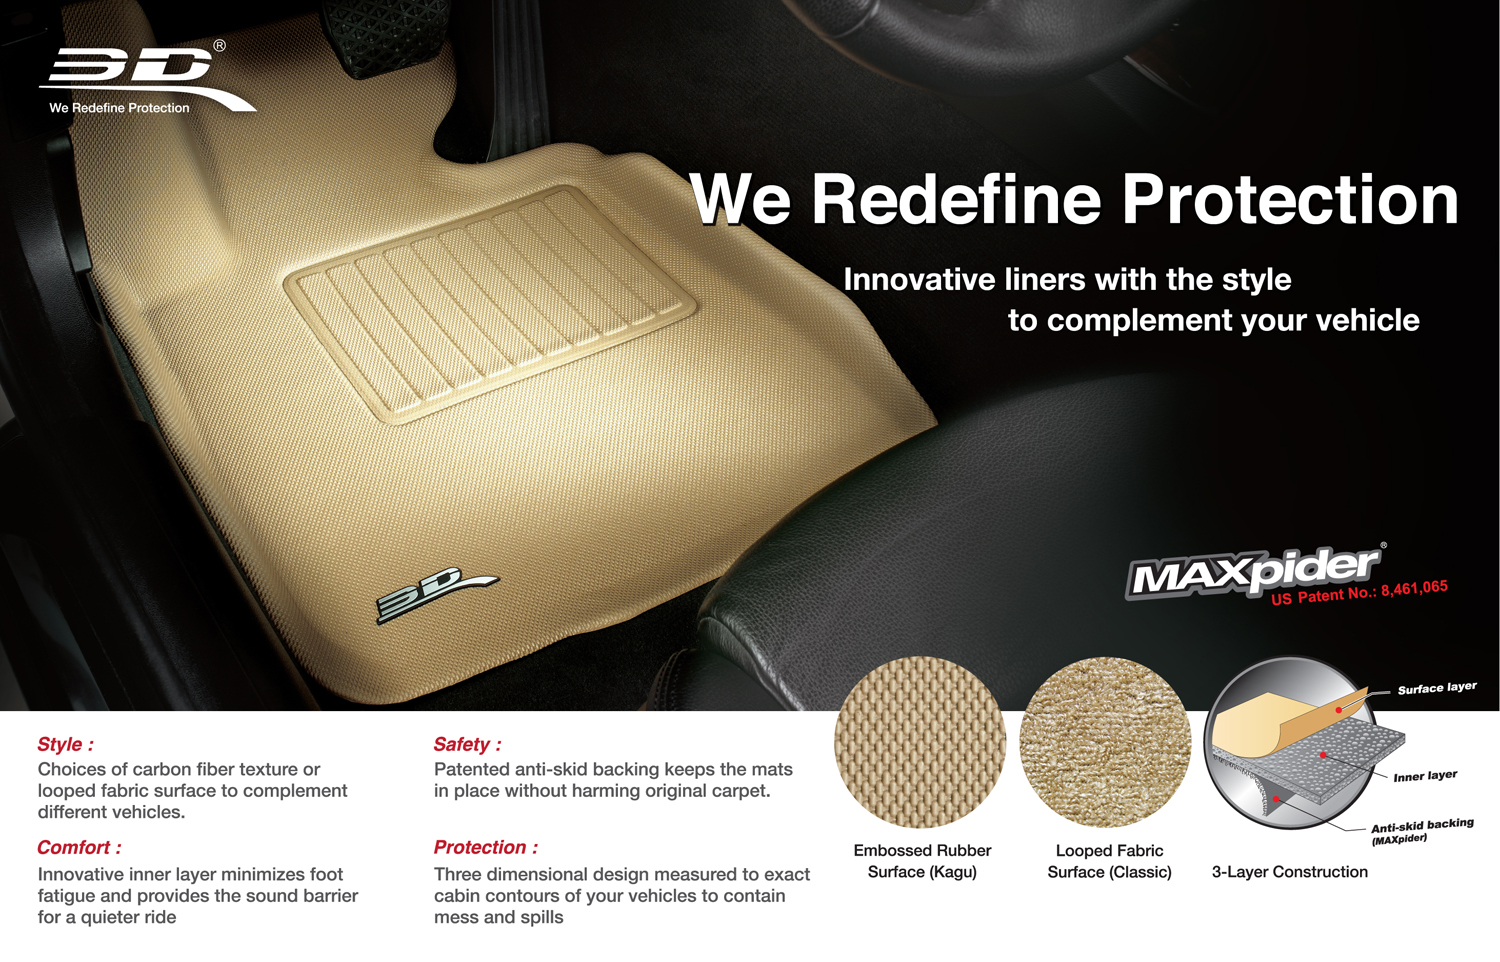 3D MAXpider Second Row Custom Fit All-Weather Floor Mat for Select Ford Flex Models Kagu Rubber Gray L1FR05121501